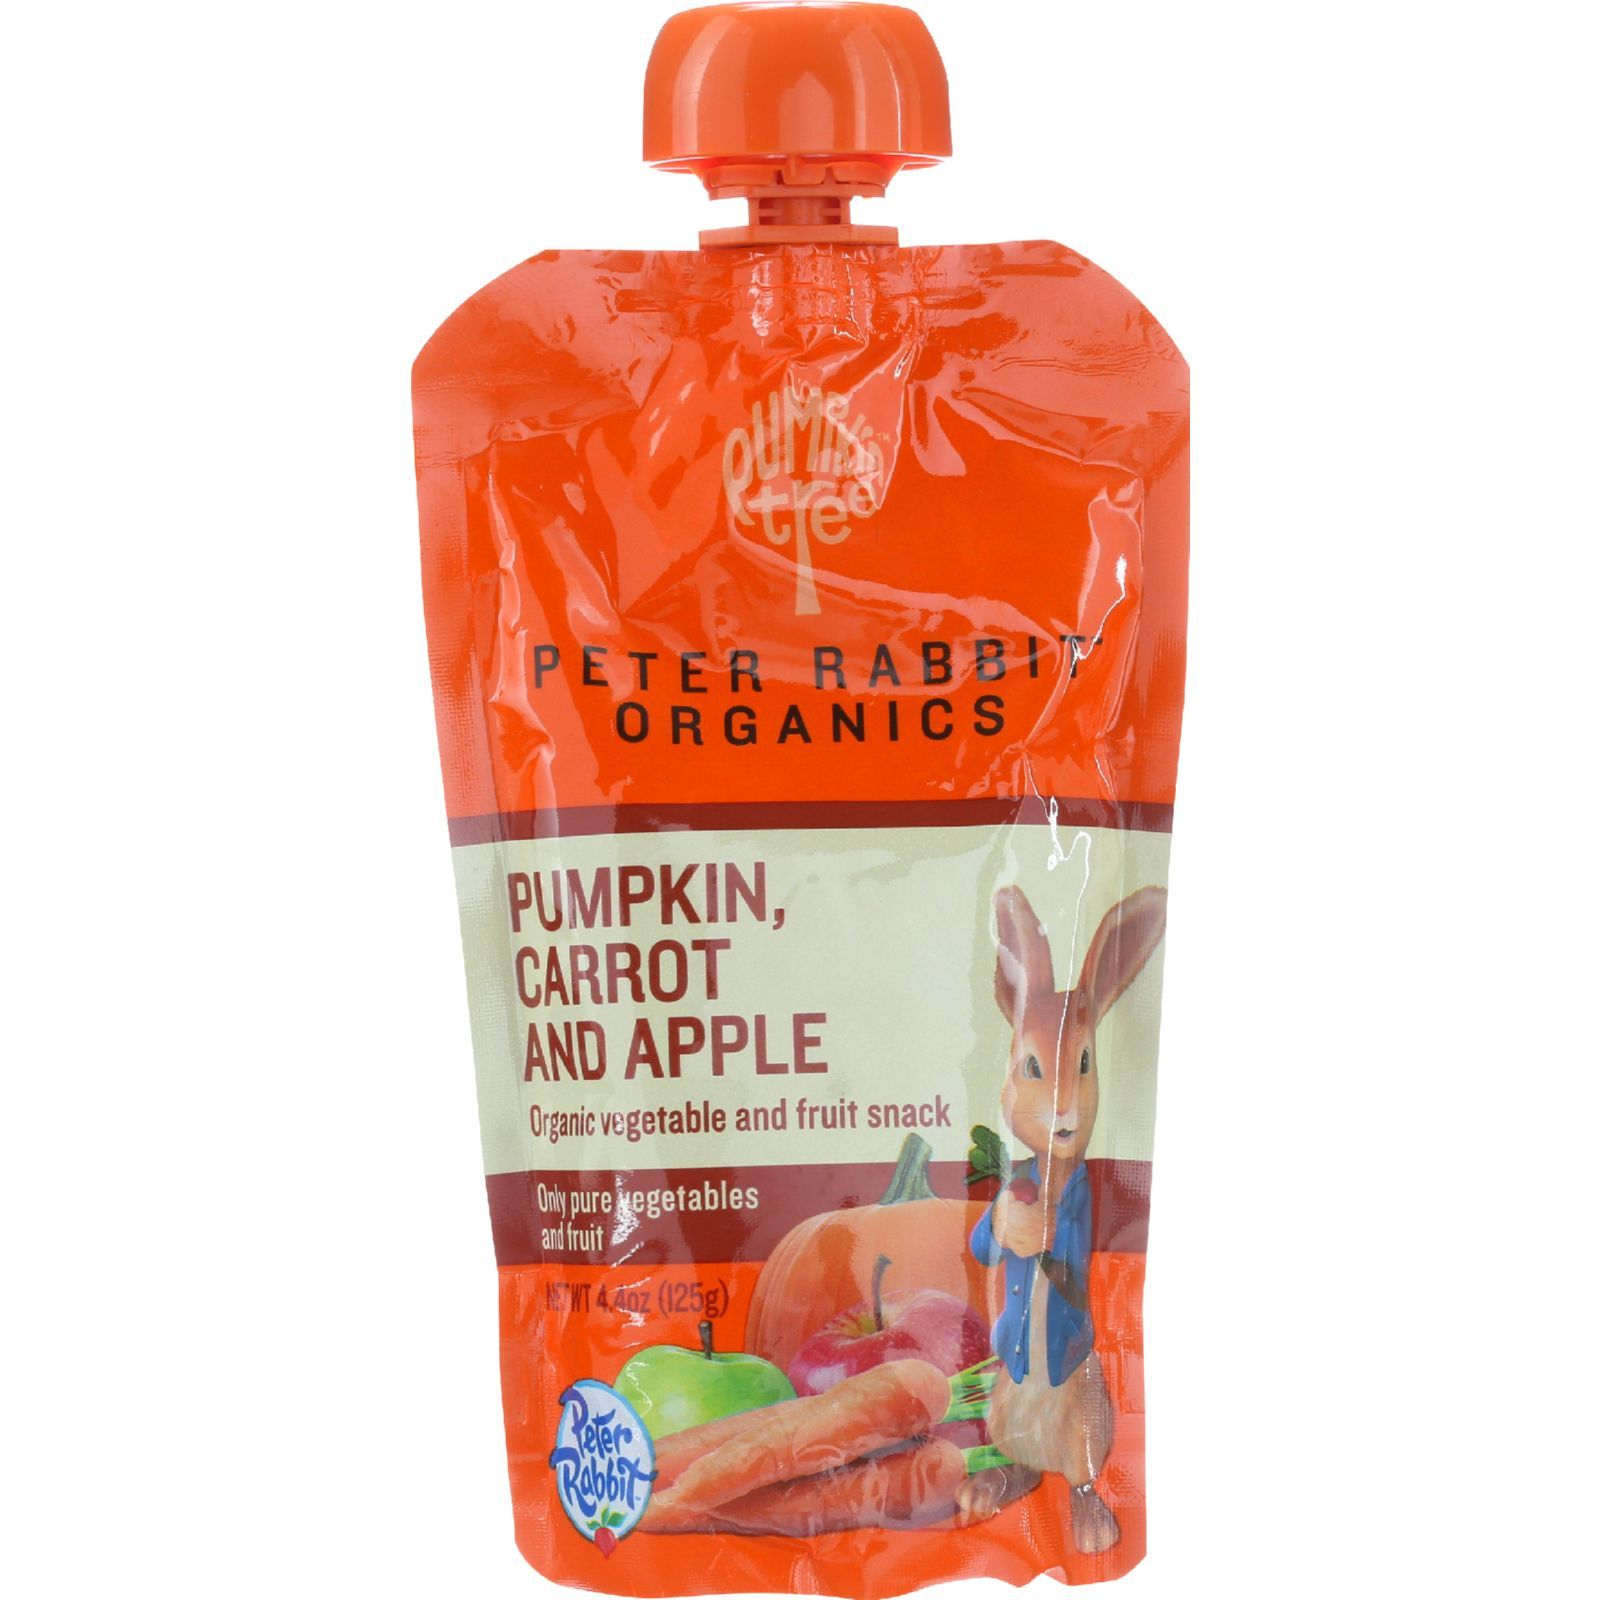 Peter Rabbit Organics Baby Food - Organic - Vegetable and Fruit Puree - Pumpkin Carrot and Apple - 4.4 oz - case of 10